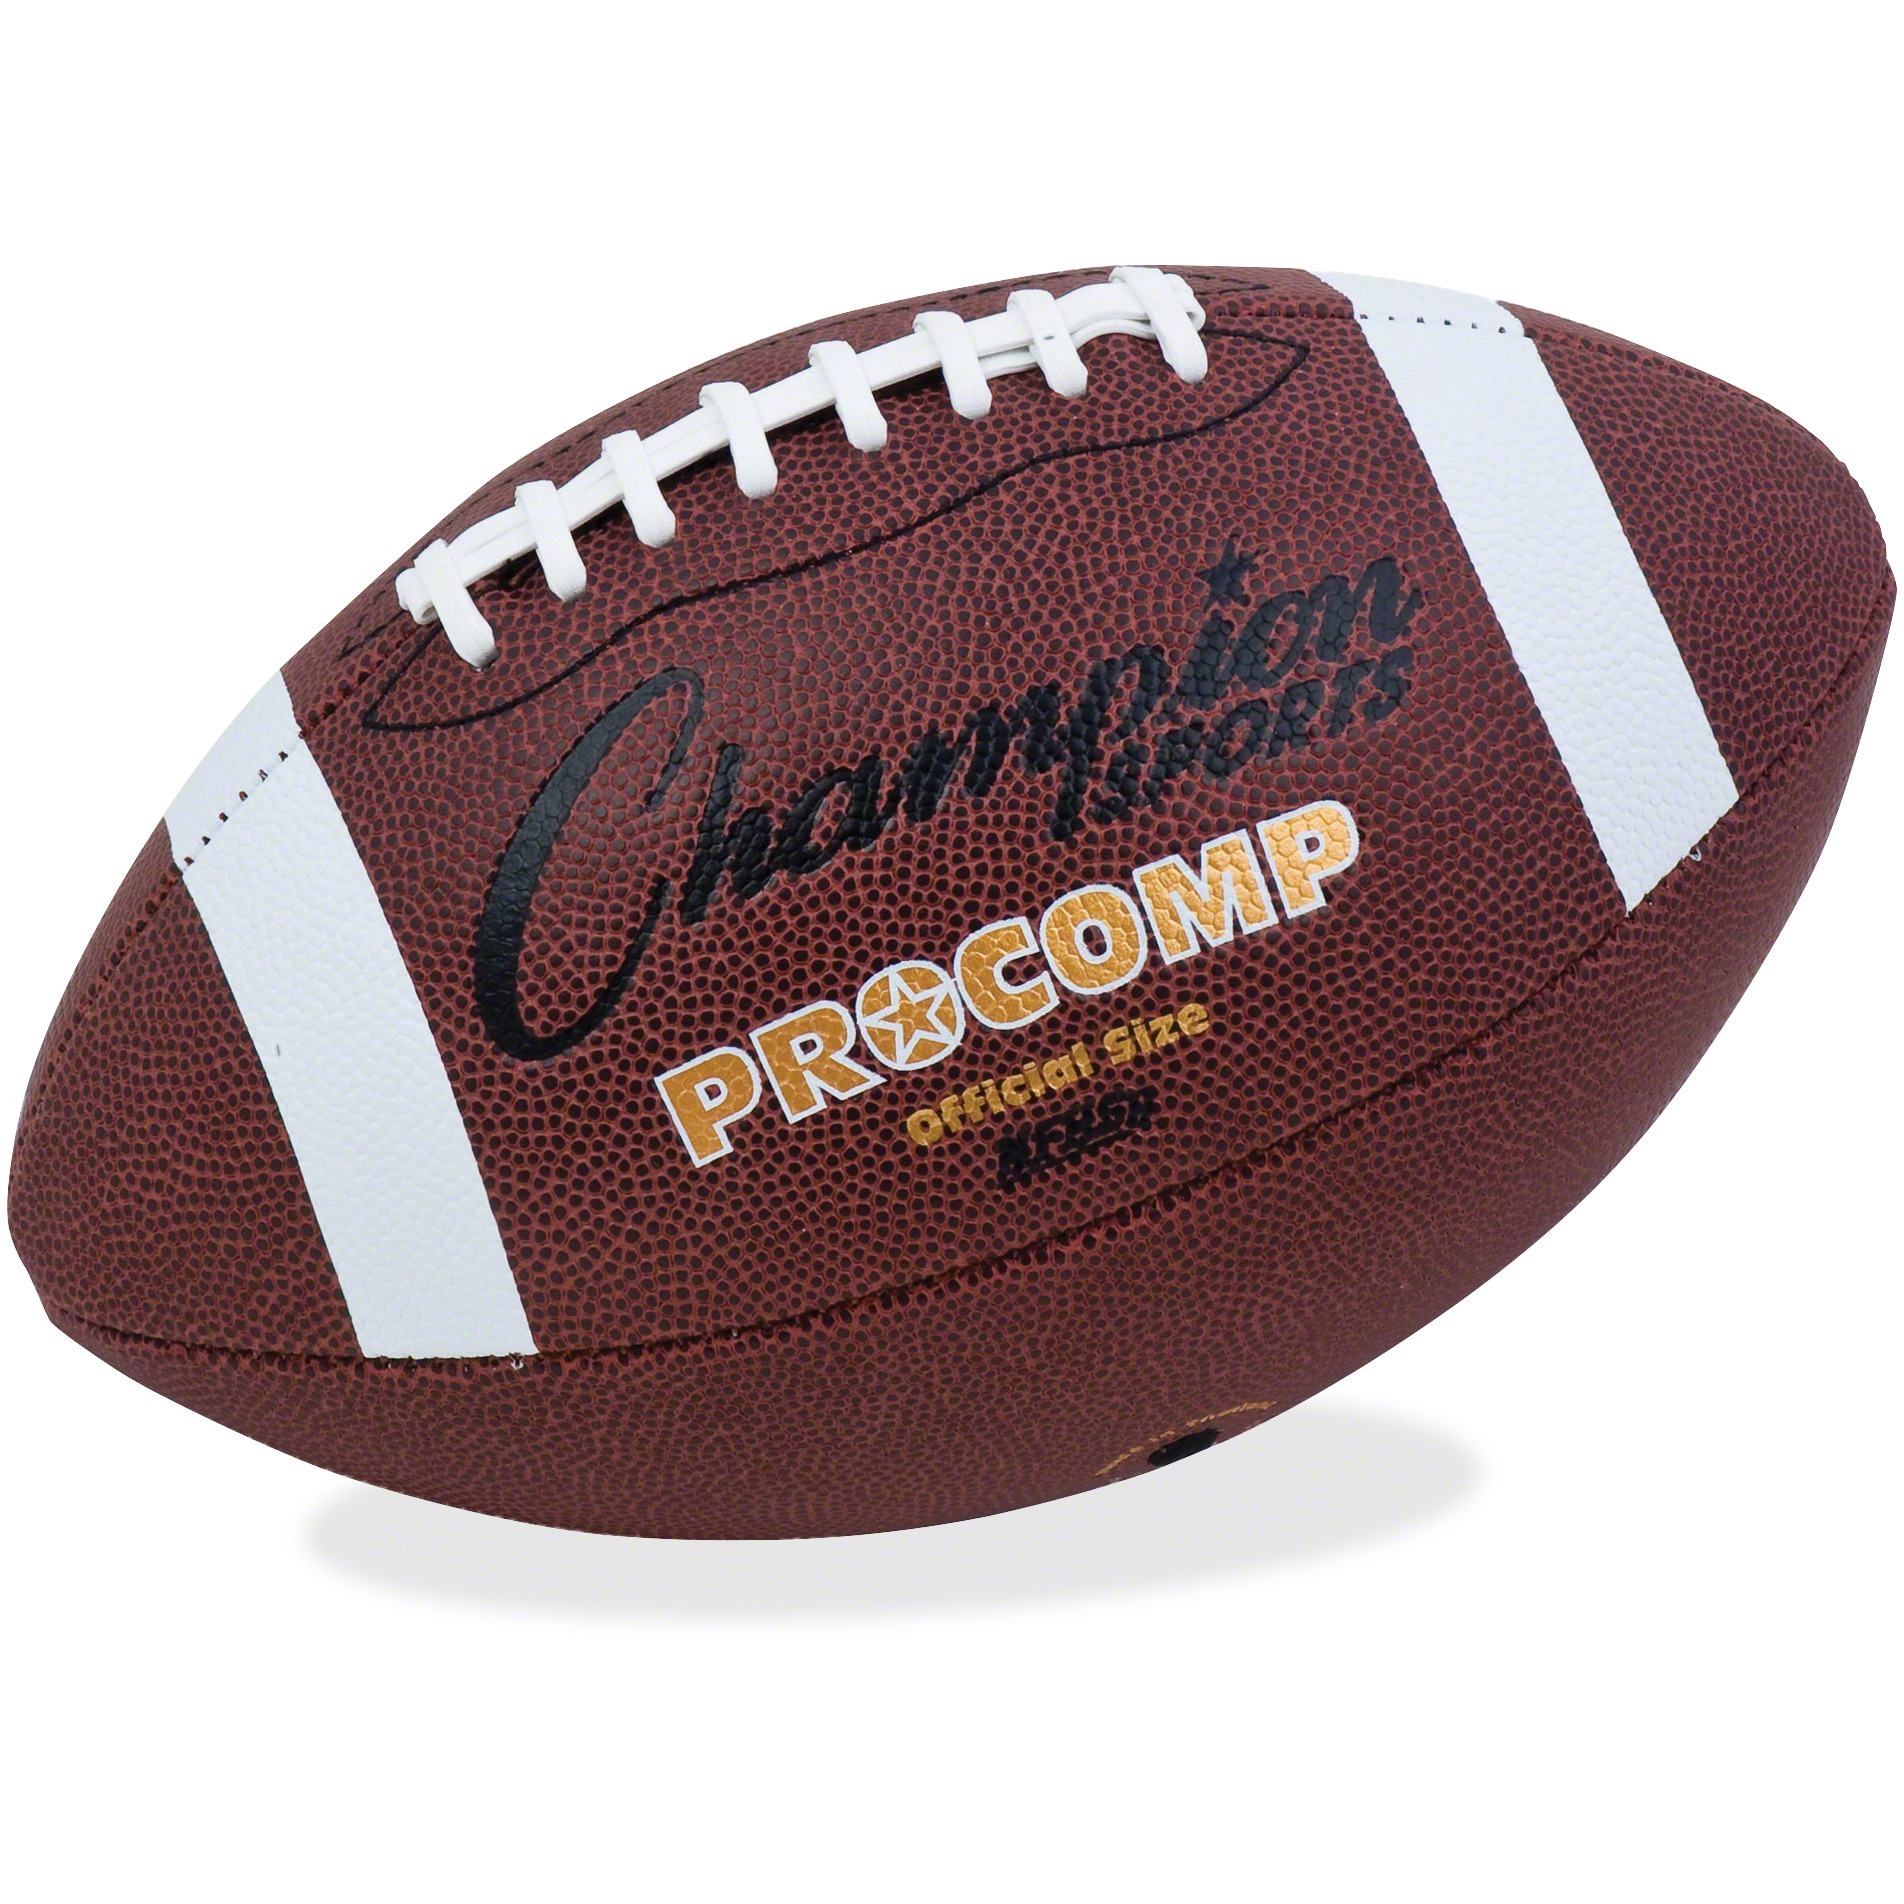 Champion Sport s Pro Comp Official Size Football, Brown, 1 Each (Quantity) by CHAMPION SPORT